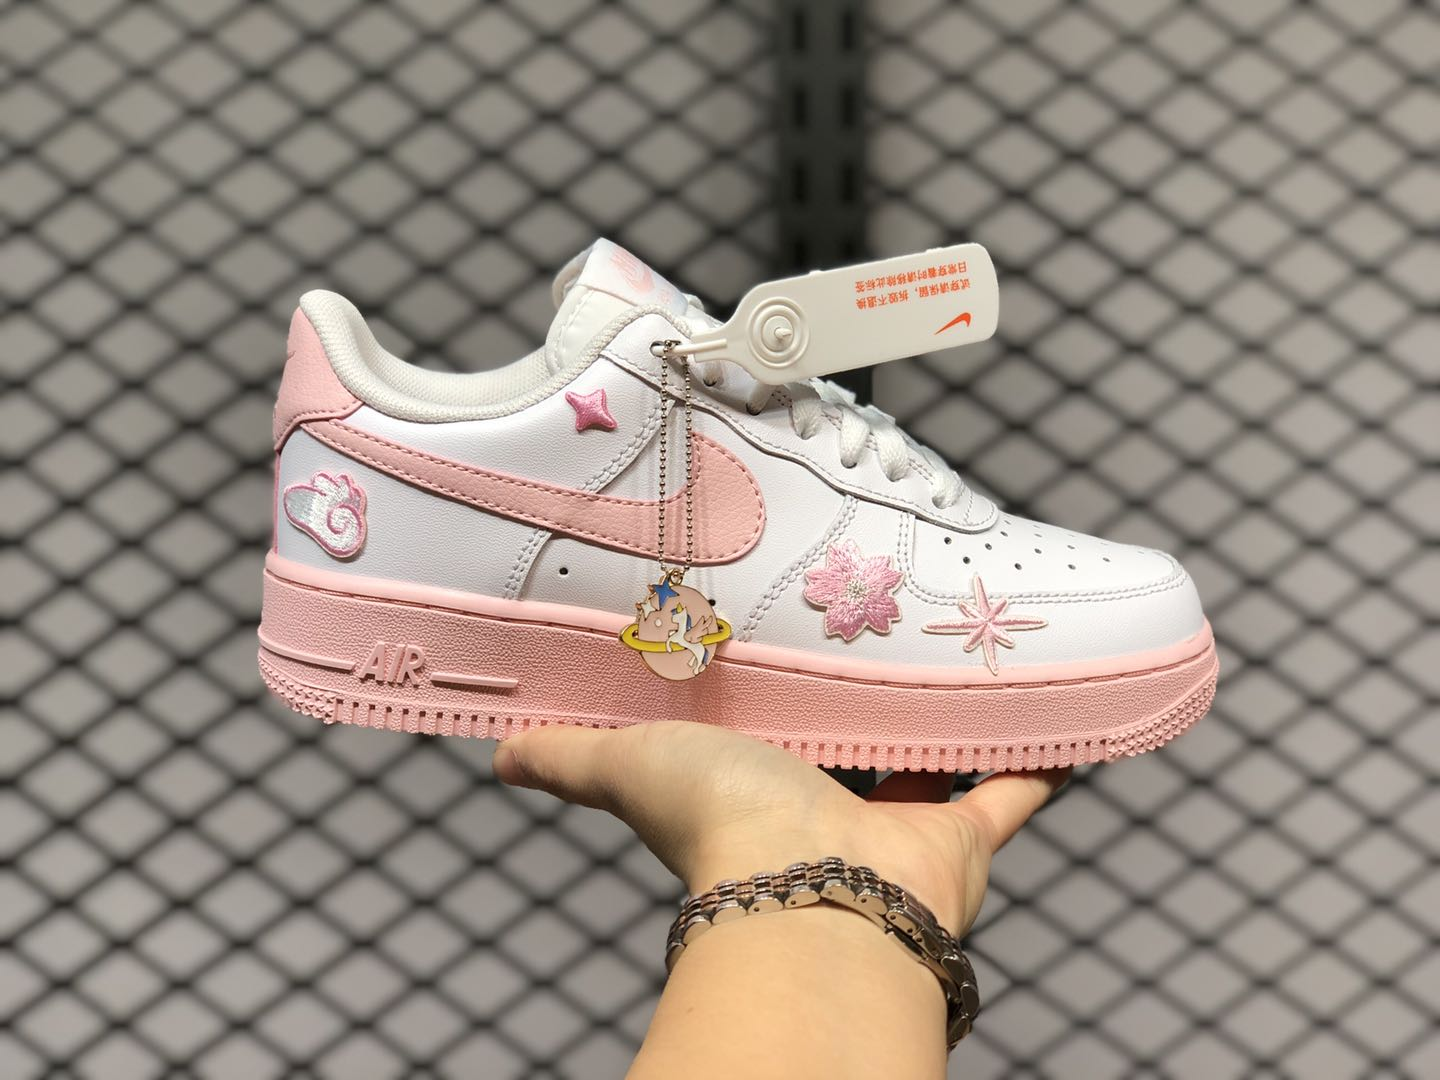 New Release Nike Wmns Air Force 1 Pink Foam White CV7663-100 ...